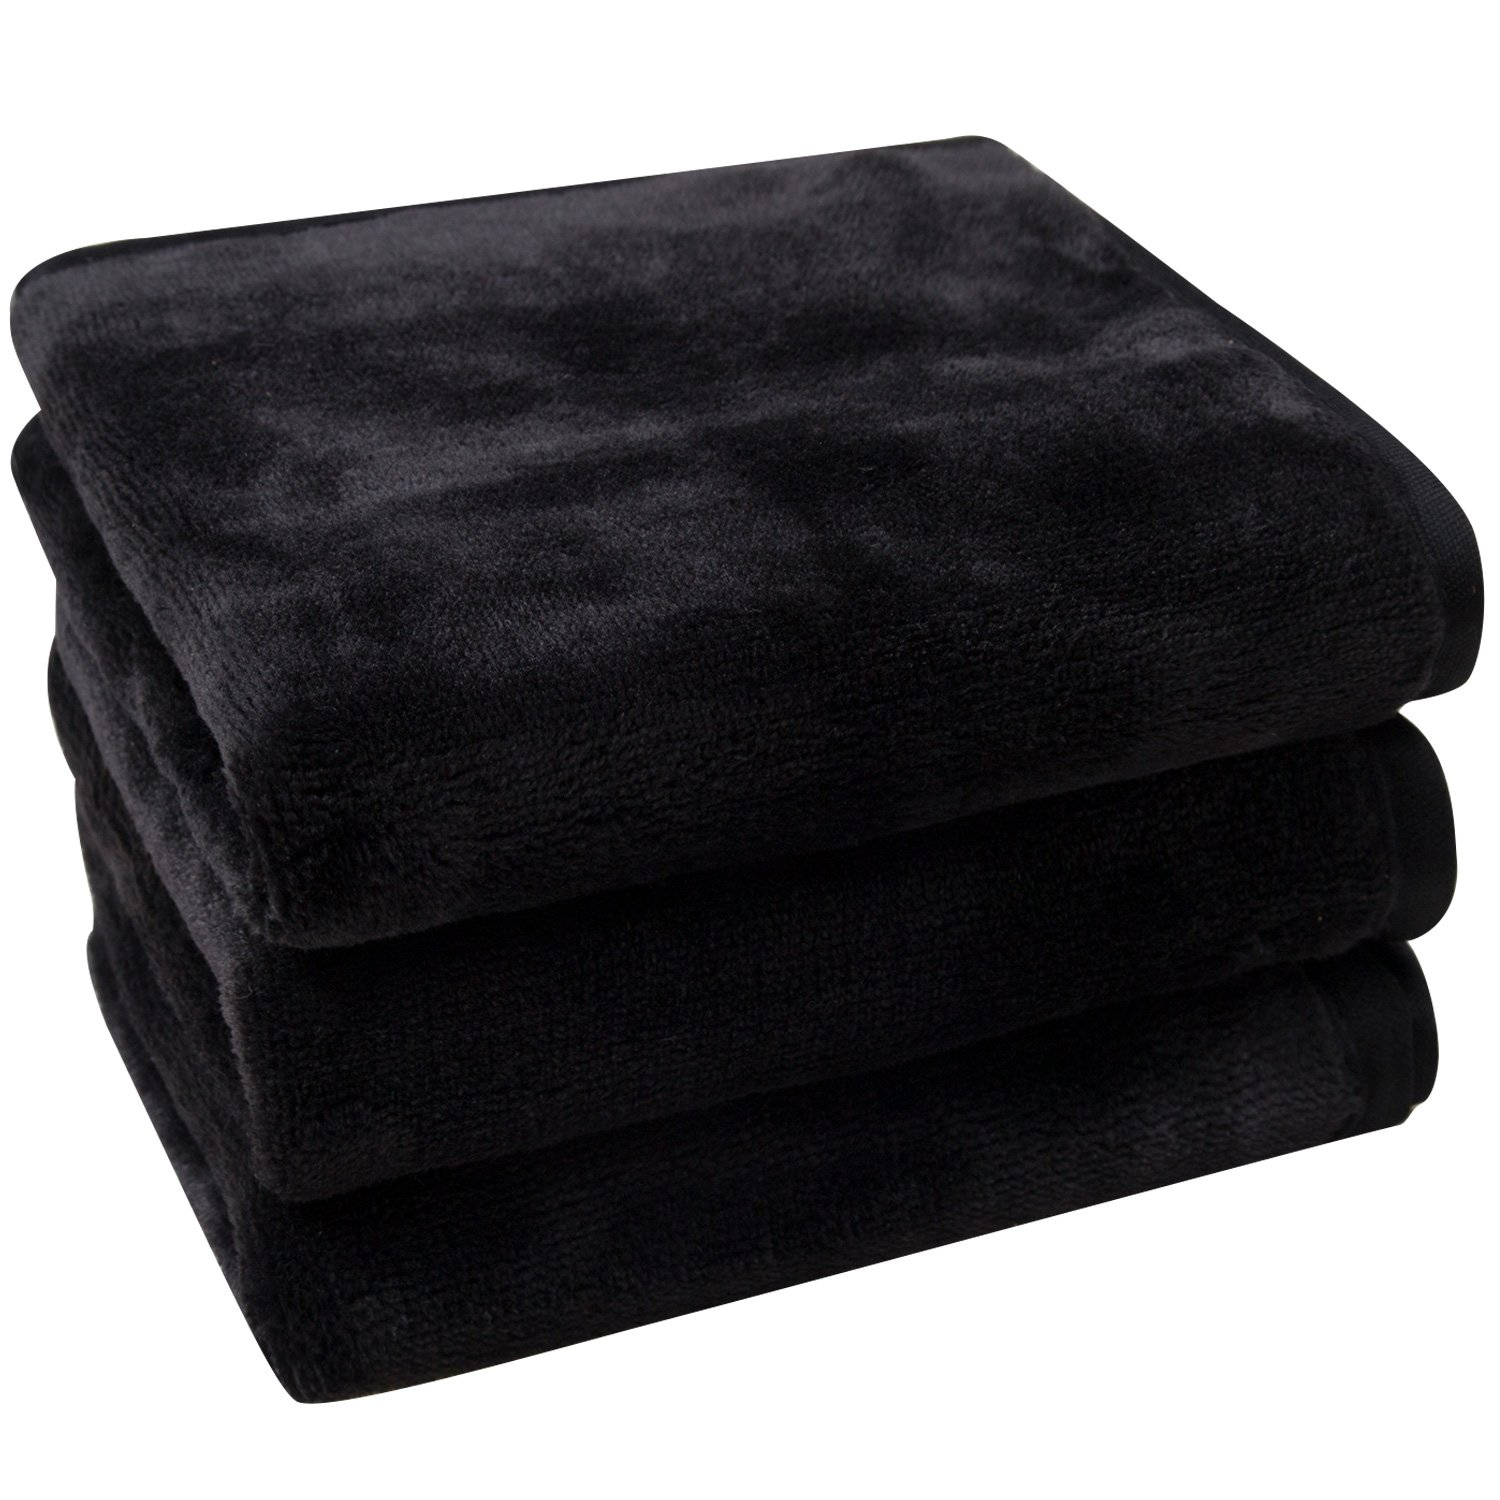 Lifaith Microfiber Makeup Removal Cloths Ultra Soft Facial Cloths, Pack Of 3, 12 x 12-Inch, Black